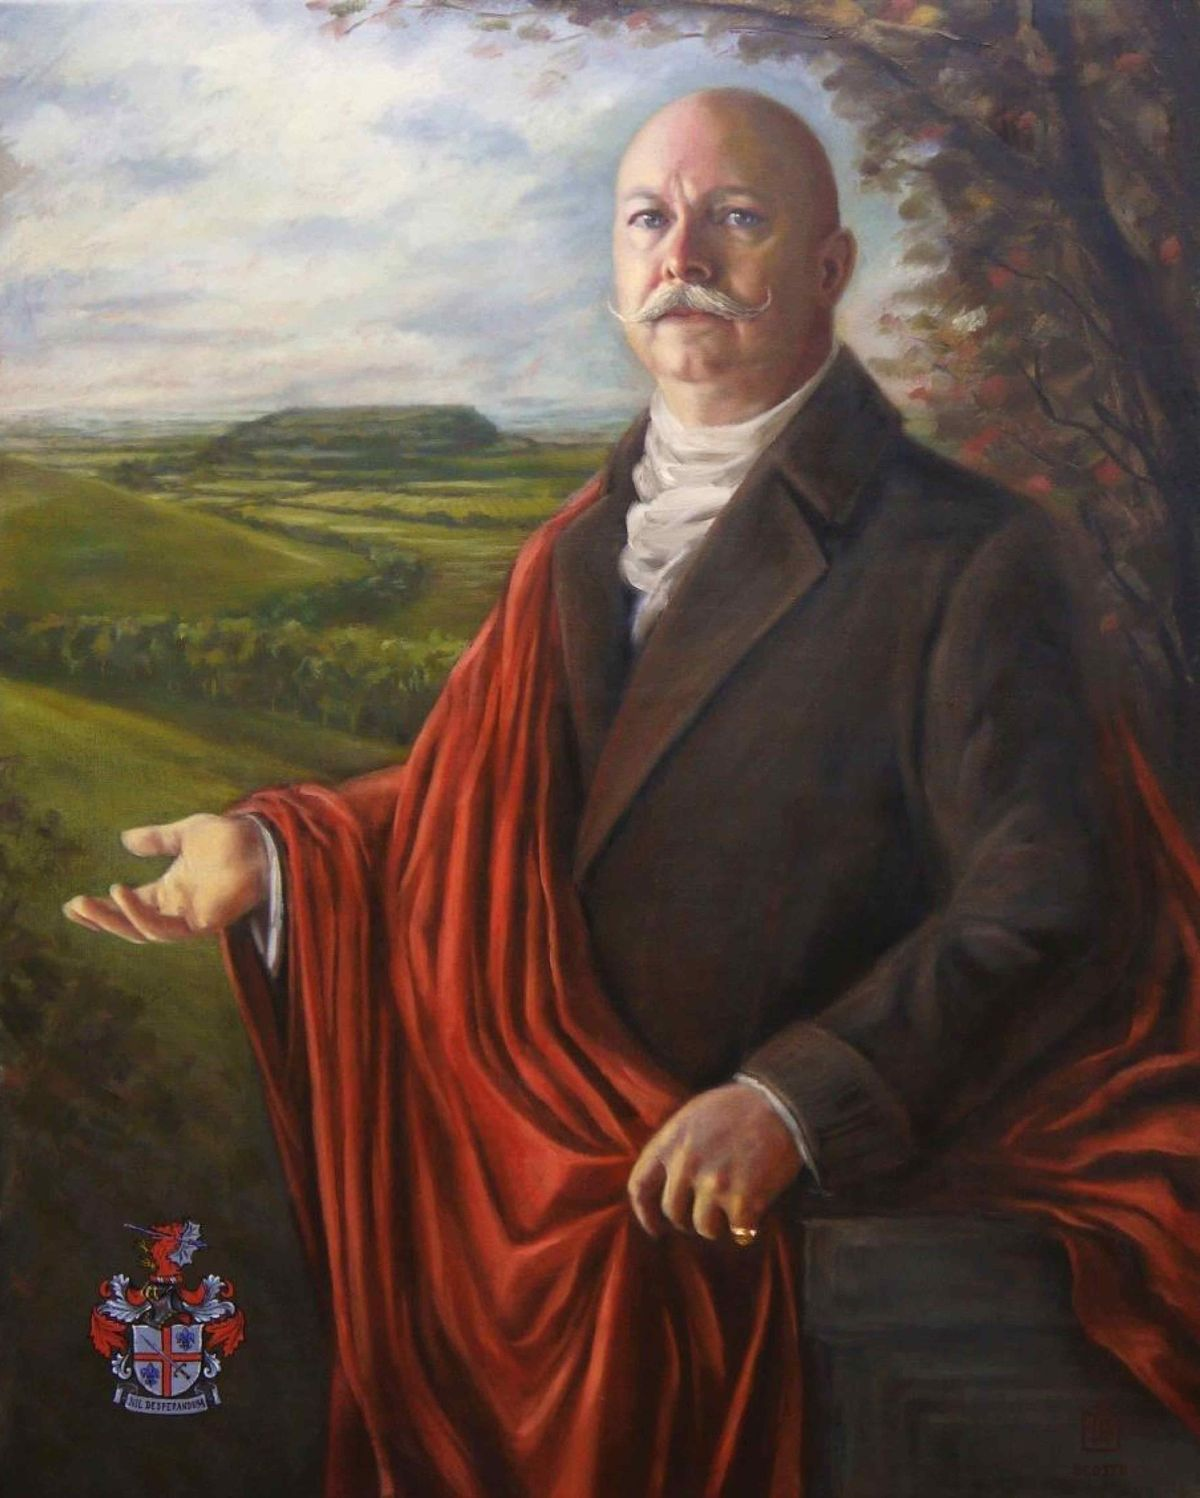 6th BARON of NORTH CADBURY, oil on linen 2016 by MAX SCOTTO ©The Baron de Newmarch Collection